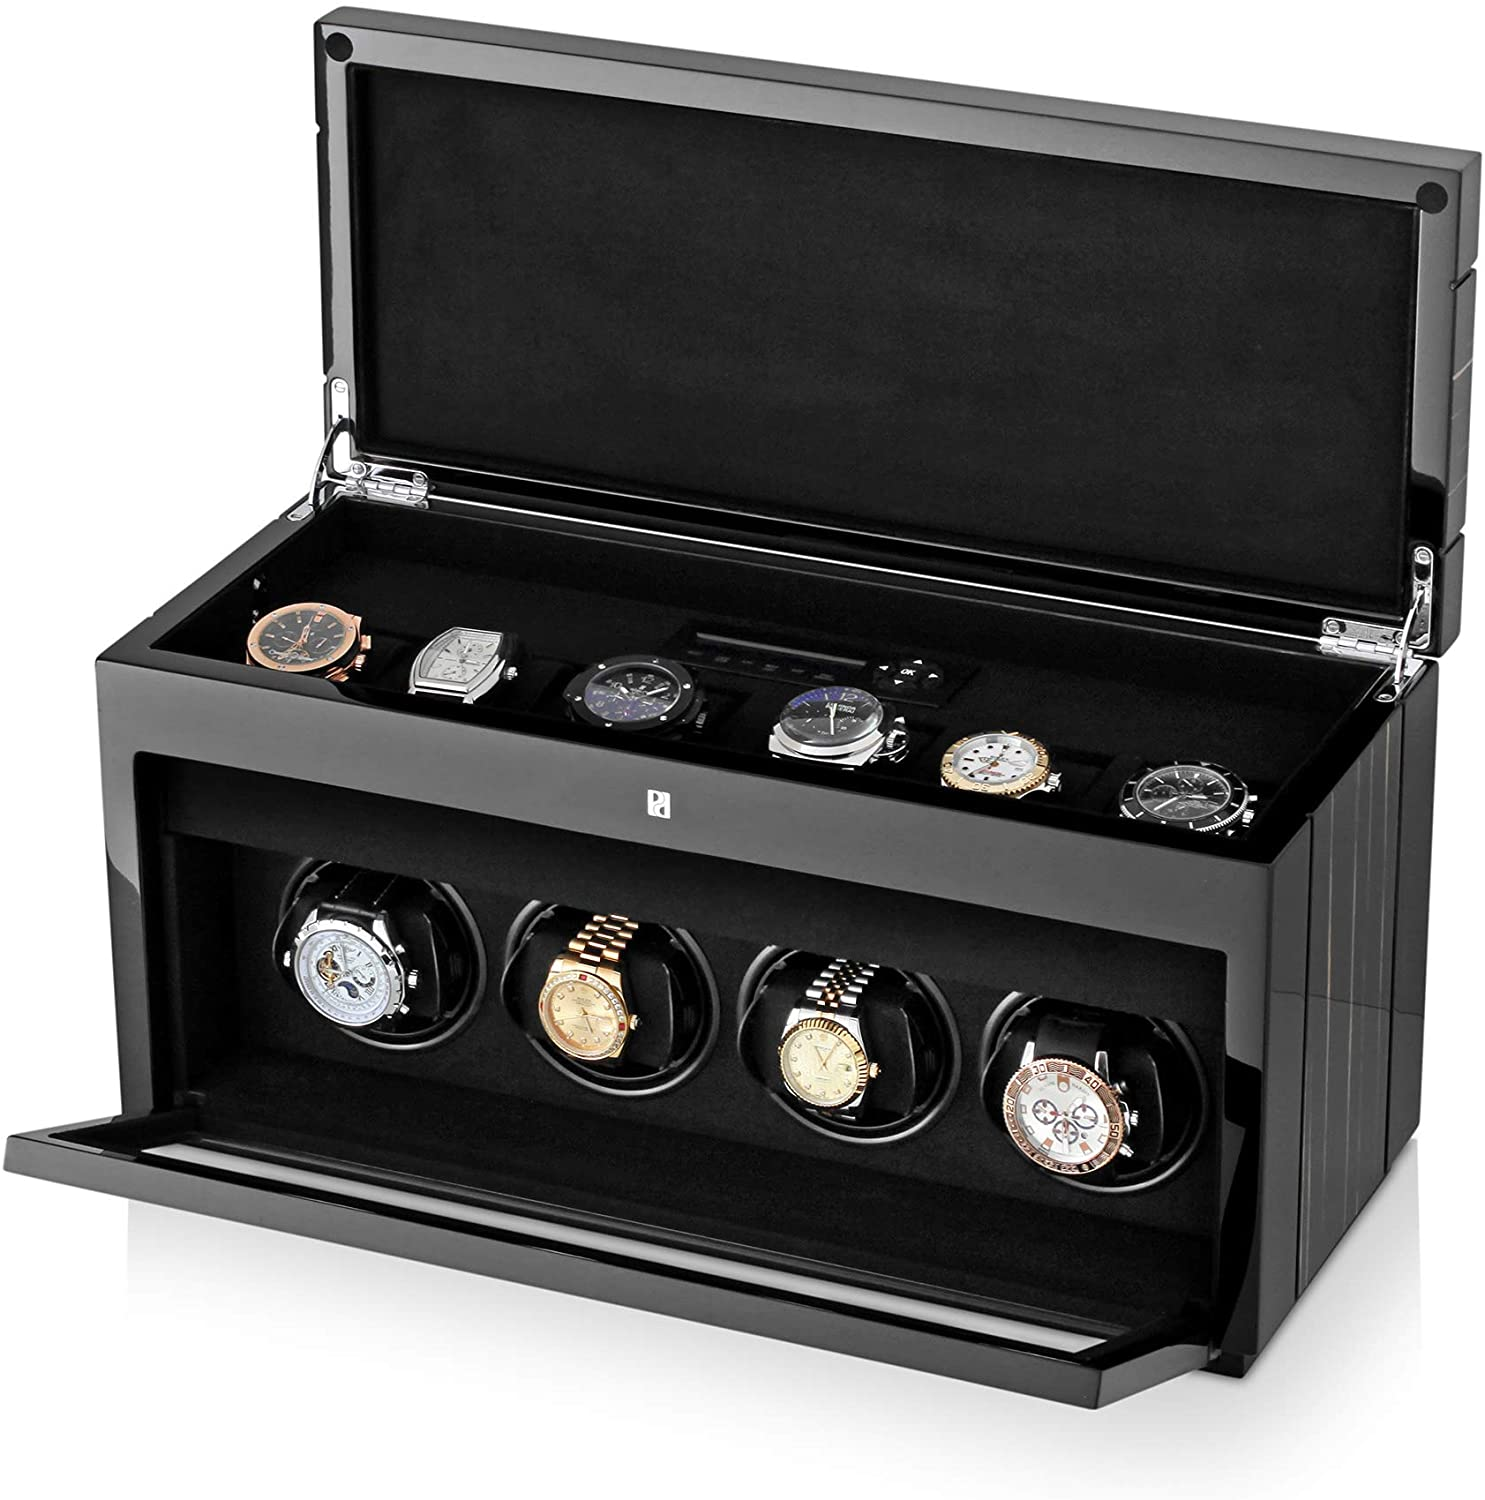 Watch Winder for 4 Automatic Watches with 6 Storage Slots, LED Backlight and LCD Display